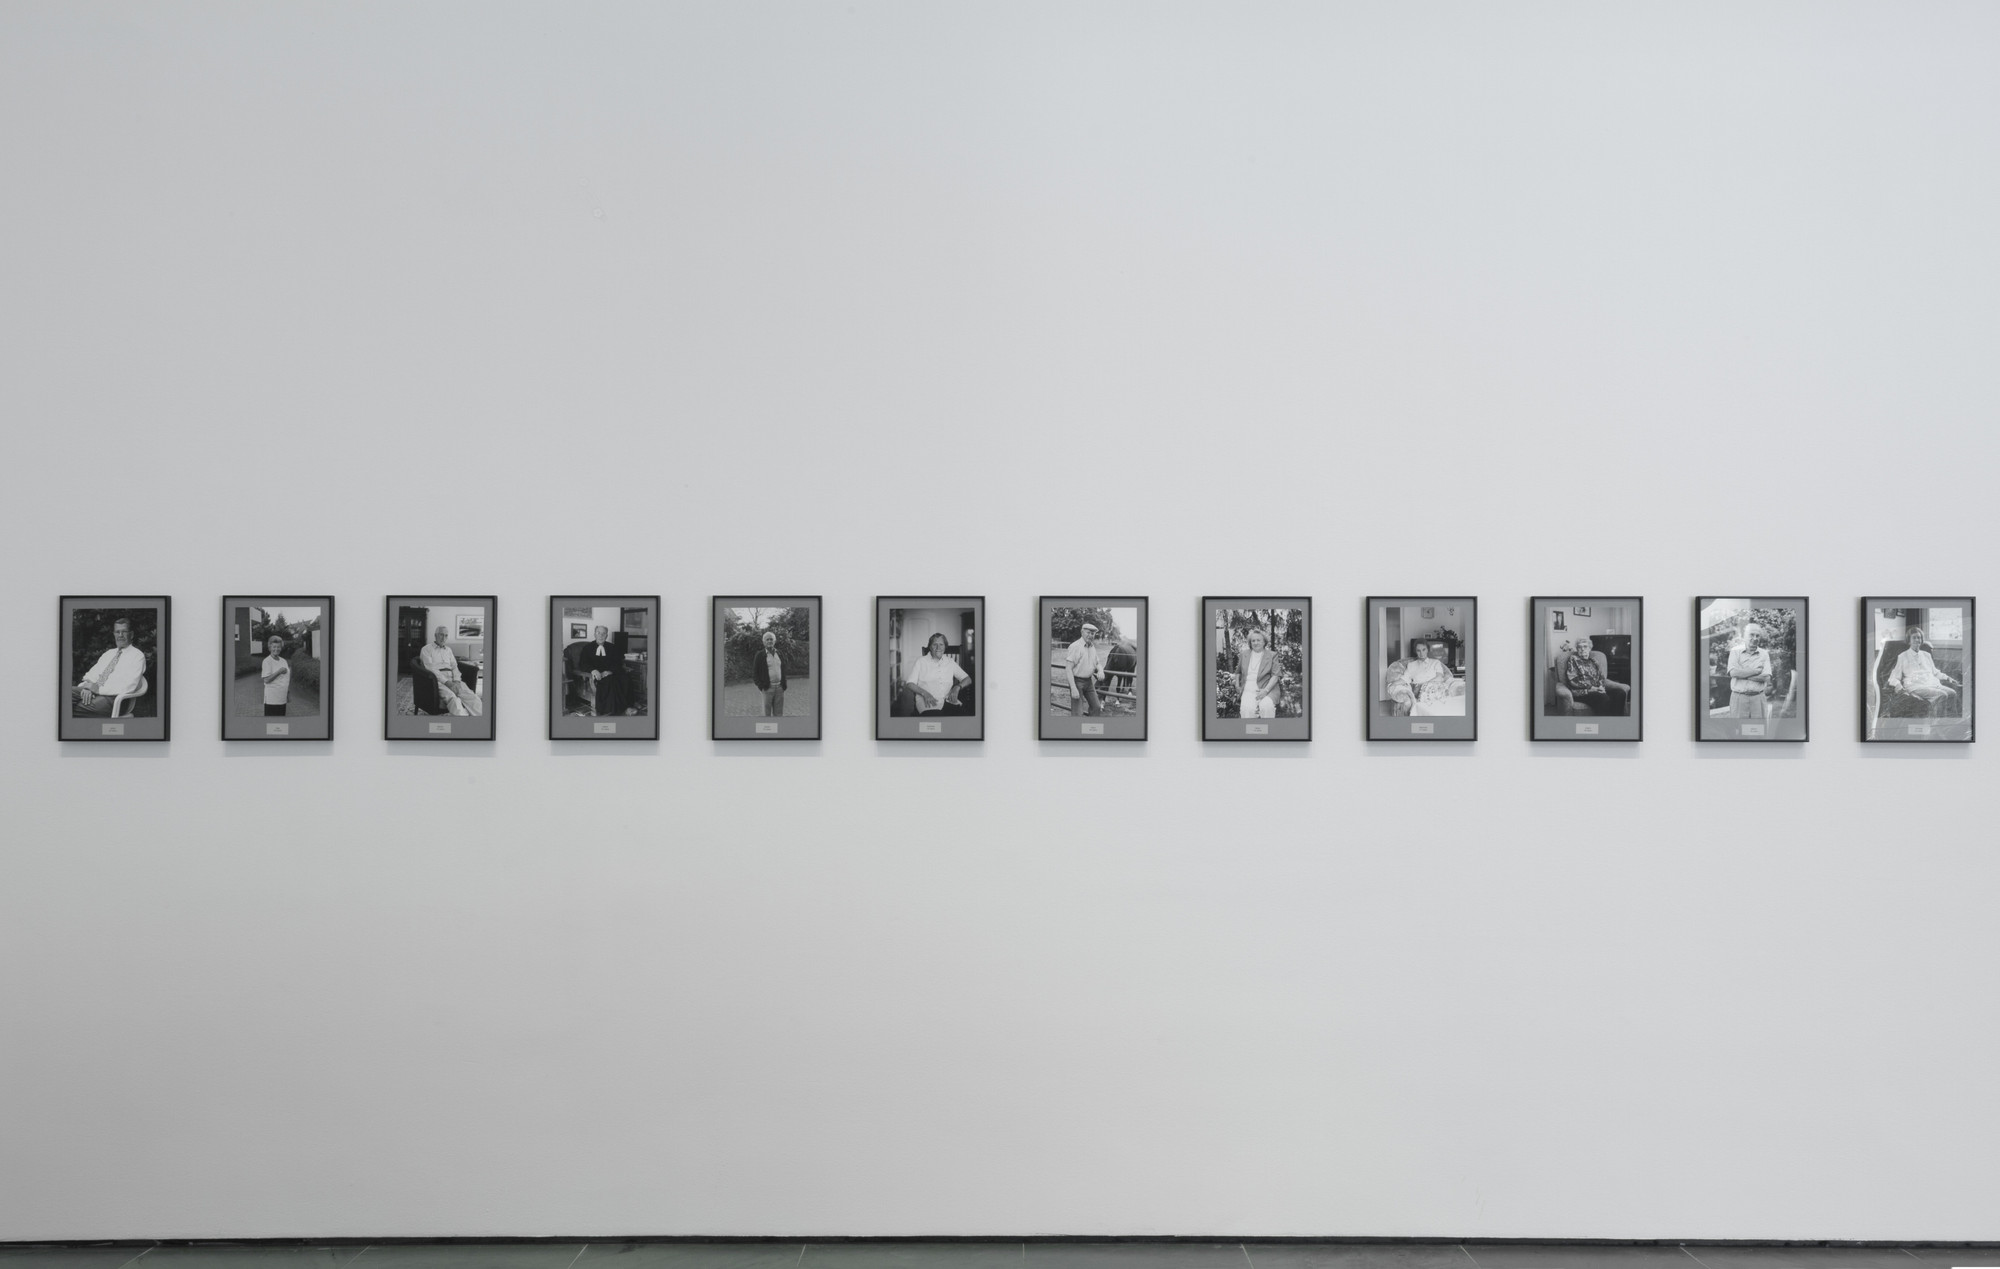 Installation view, of Inbox: Hans-Peter Feldmann's 100 Years, The Museum of Modern Art, New York, February 11–March 12, 2017. Shown: Hans-Peter Feldmann. 100 Years. 2001. 101 gelatin silver prints, each 12 × 9 1/2″ (30.5 × 24.1 cm). The Photography Council Fund, and Vital Projects Fund, Robert B. Menschel, 2016. © 2017 Hans-Peter Feldmann/Artists Rights Society (ARS), New York/VG Bild-Kunst, Germany